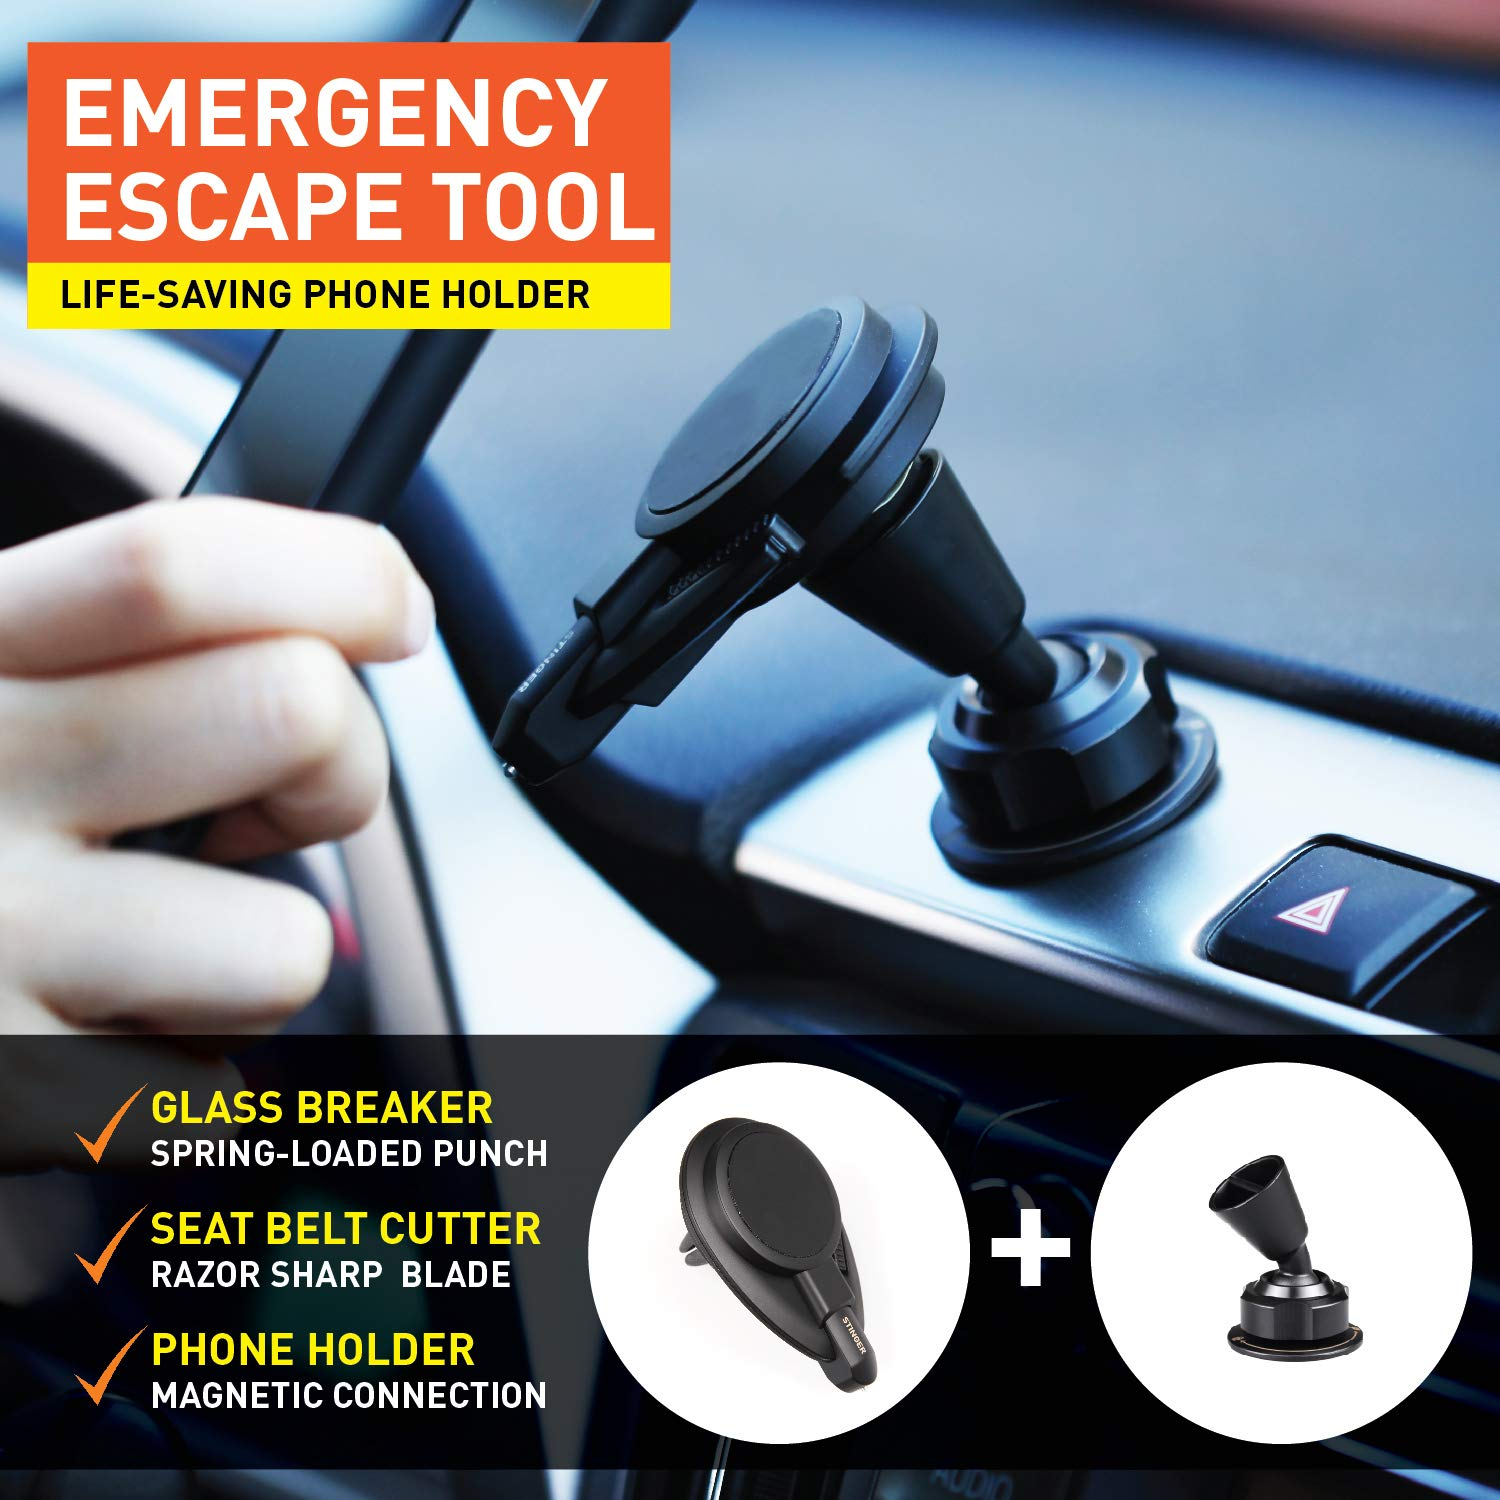 Designed in USA Black 2 pcs combo Seat belt Cutter Magnetic Vent Mount Phone Holder Ztylus Stinger Car Emergency Escape Tool: Multi function Life-Saving Rescue Spring Loaded Window Breaker Punch